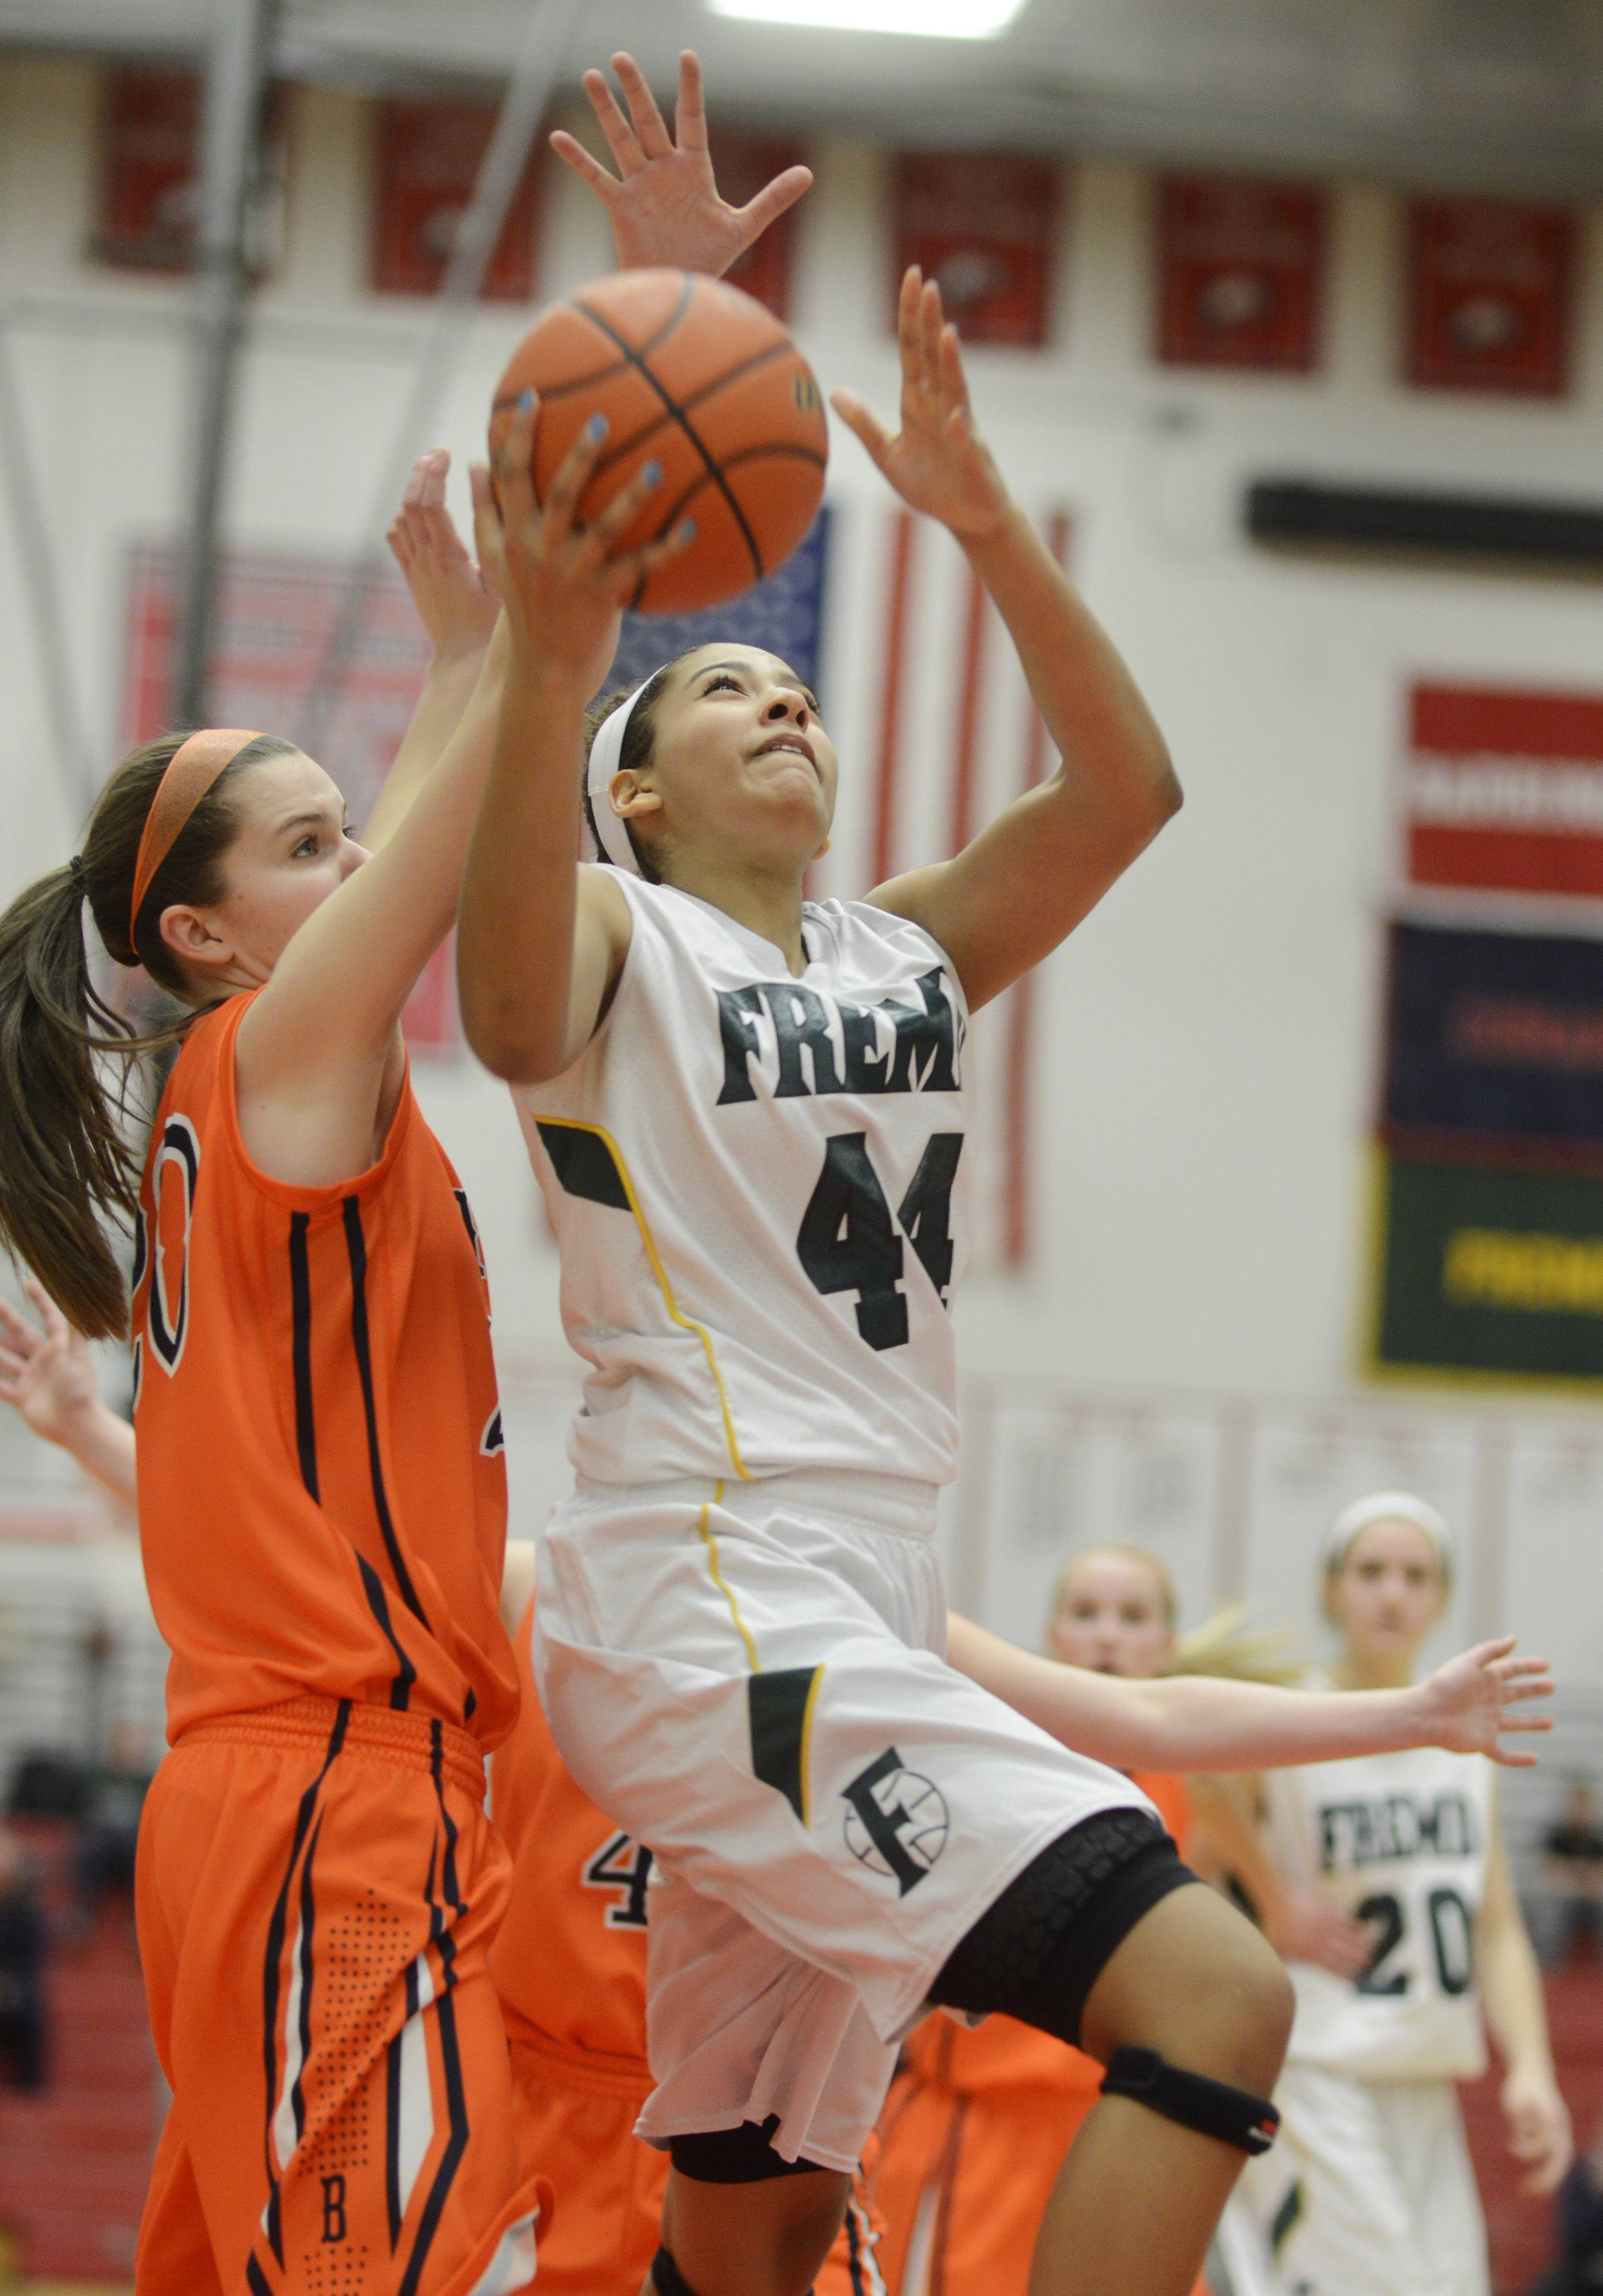 Fremd's Bryana Hopkins, right, drives to the basket against Buffalo Grove's Courtney Meyer during the Class 4A sectional semifinal at Barrington on Tuesday.